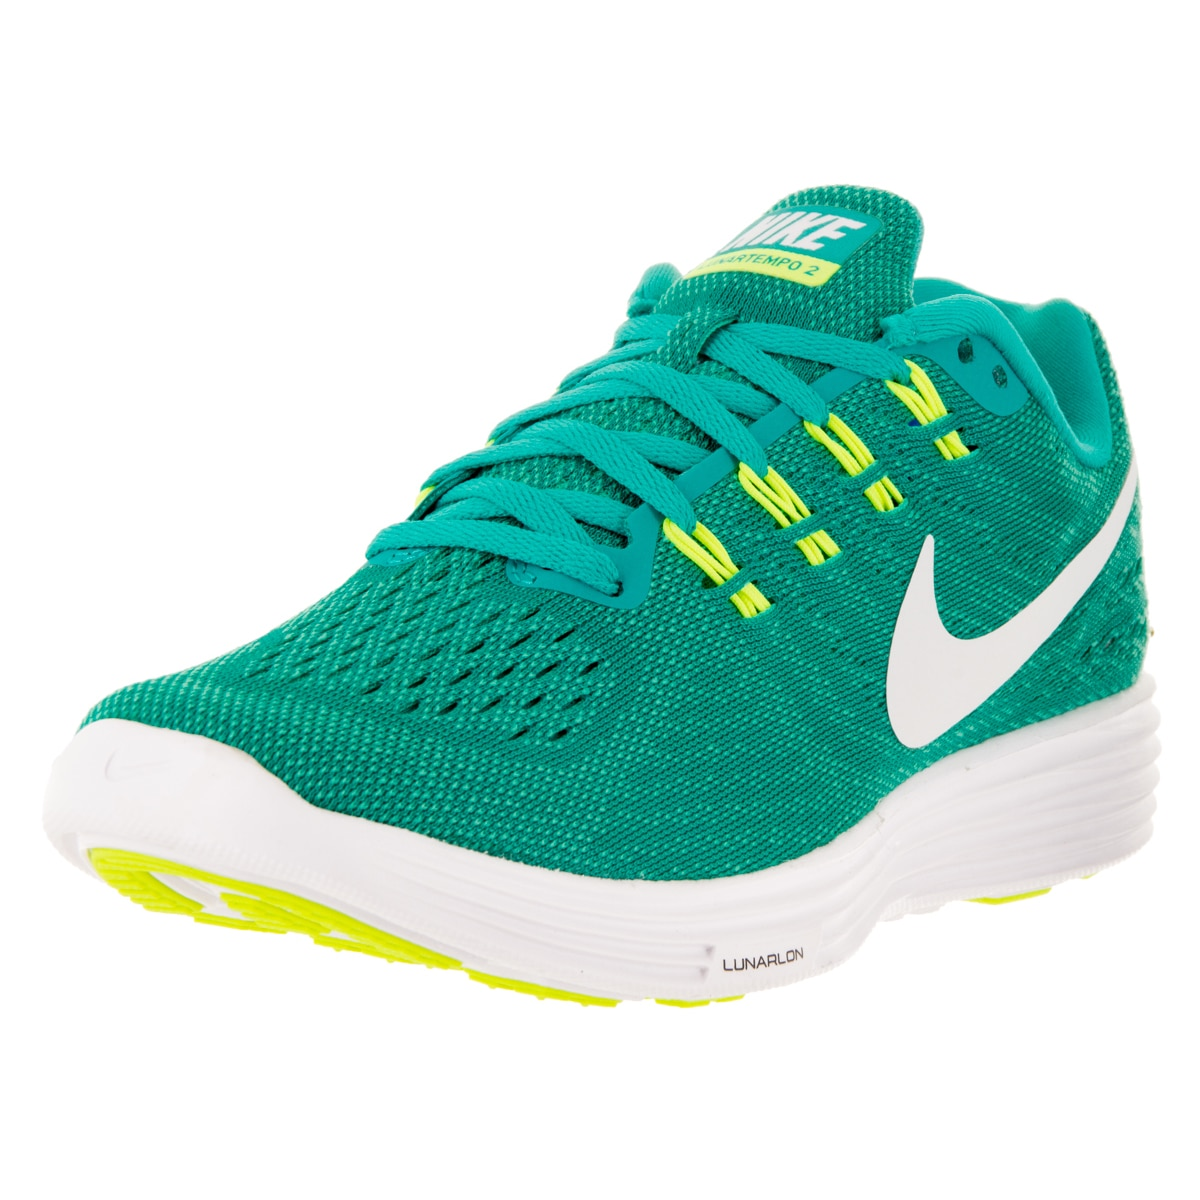 cheap for discount 97416 a9c73 ... reduced shop nike womens lunartempo 2 clear jade white hyper jade  violet running shoe free shipping